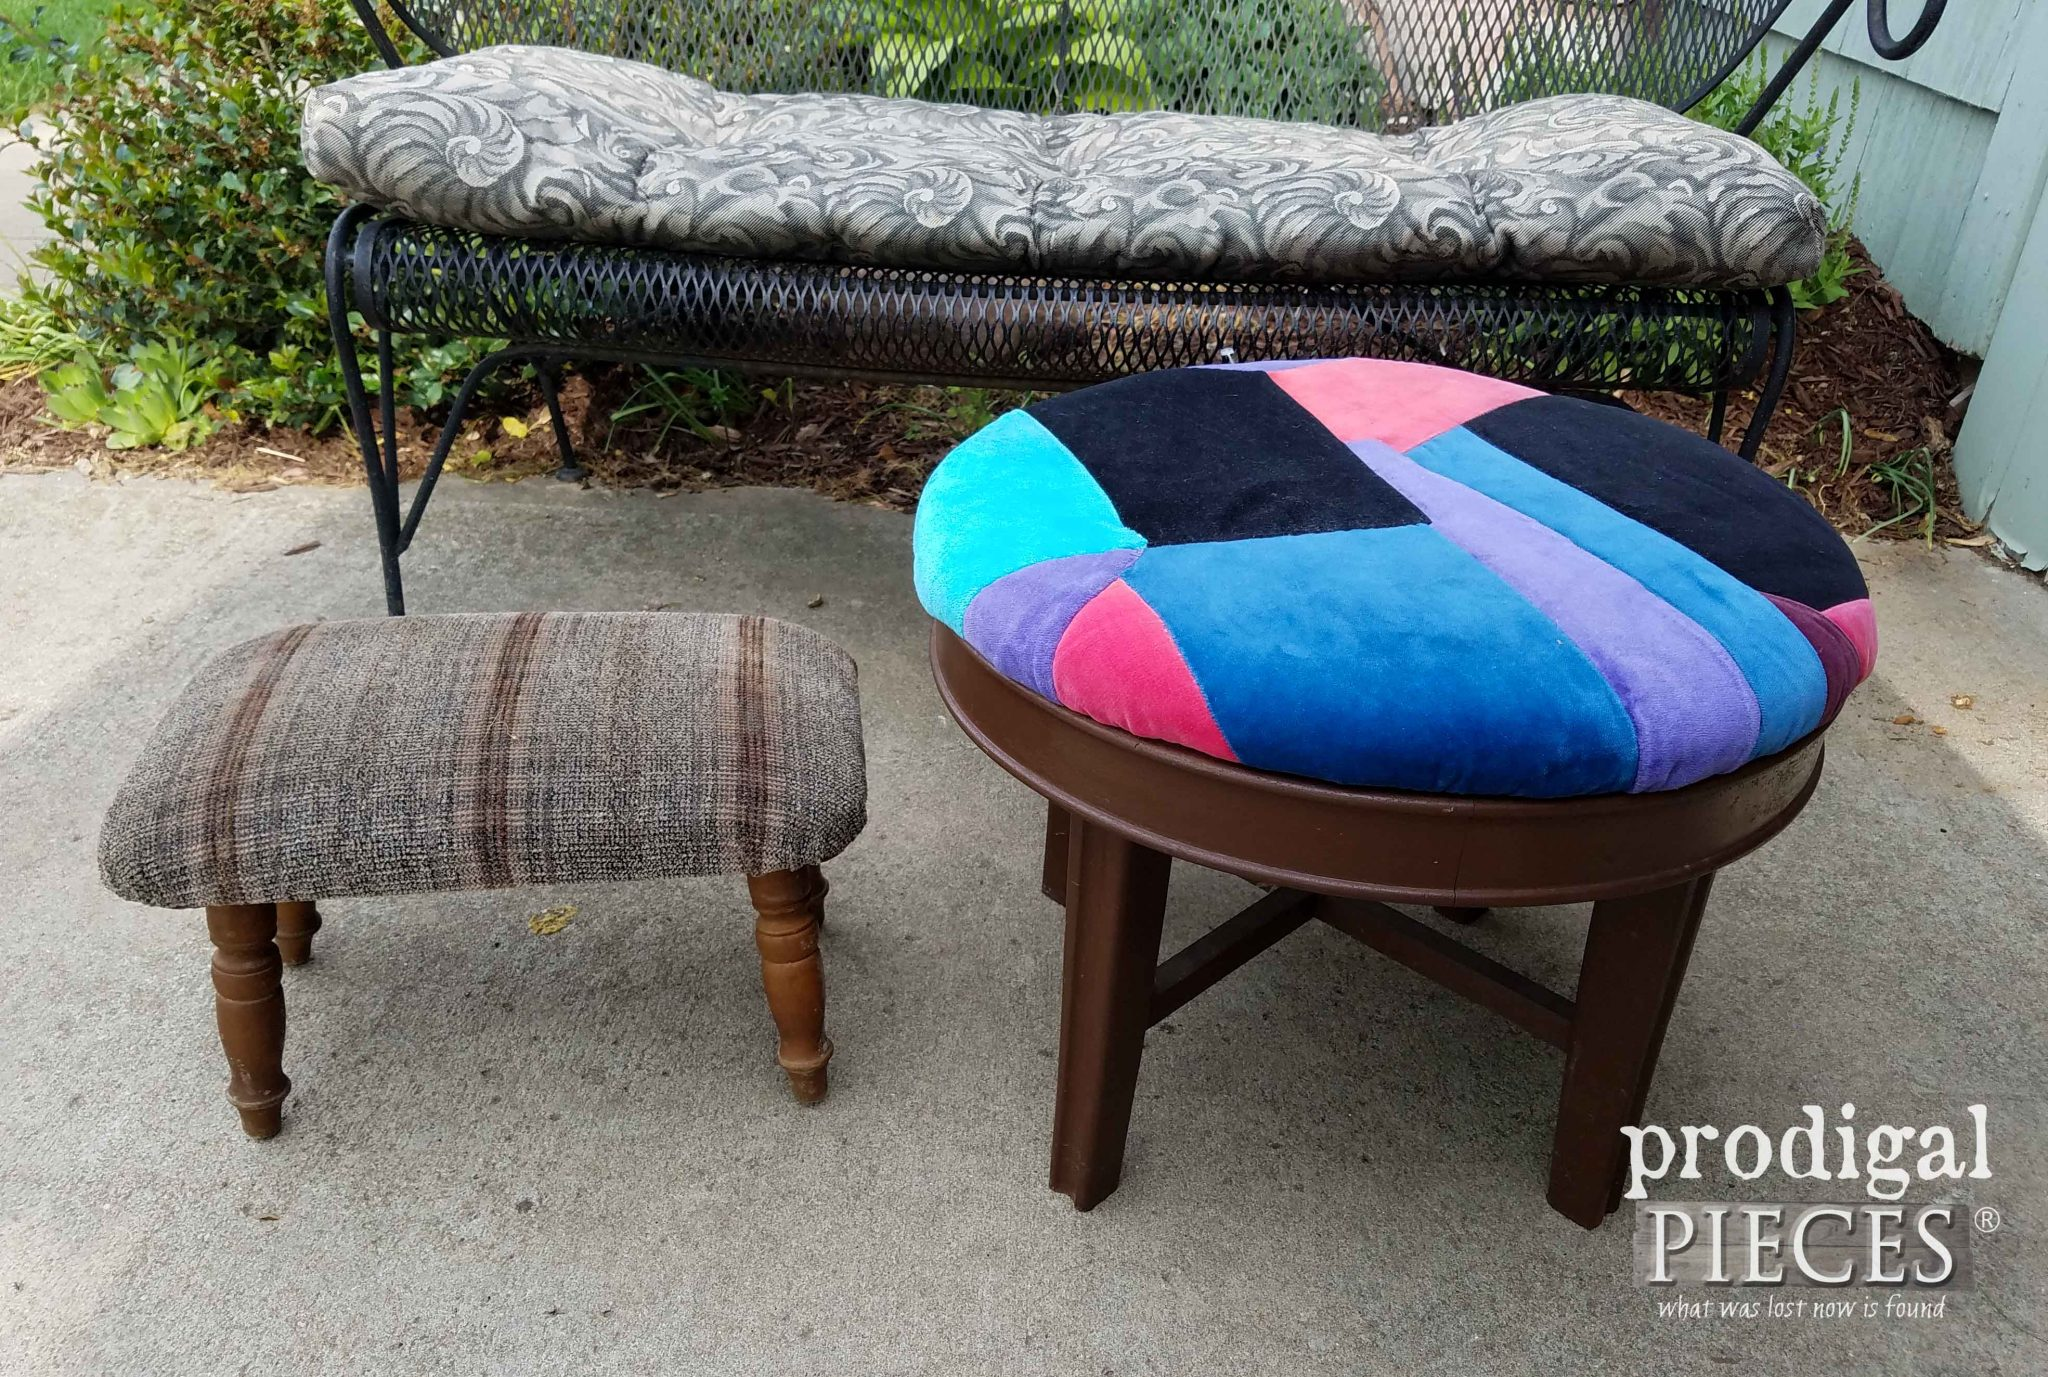 Thrifted Footstools Before Makeover by Prodigal Pieces | prodigalpieces.com